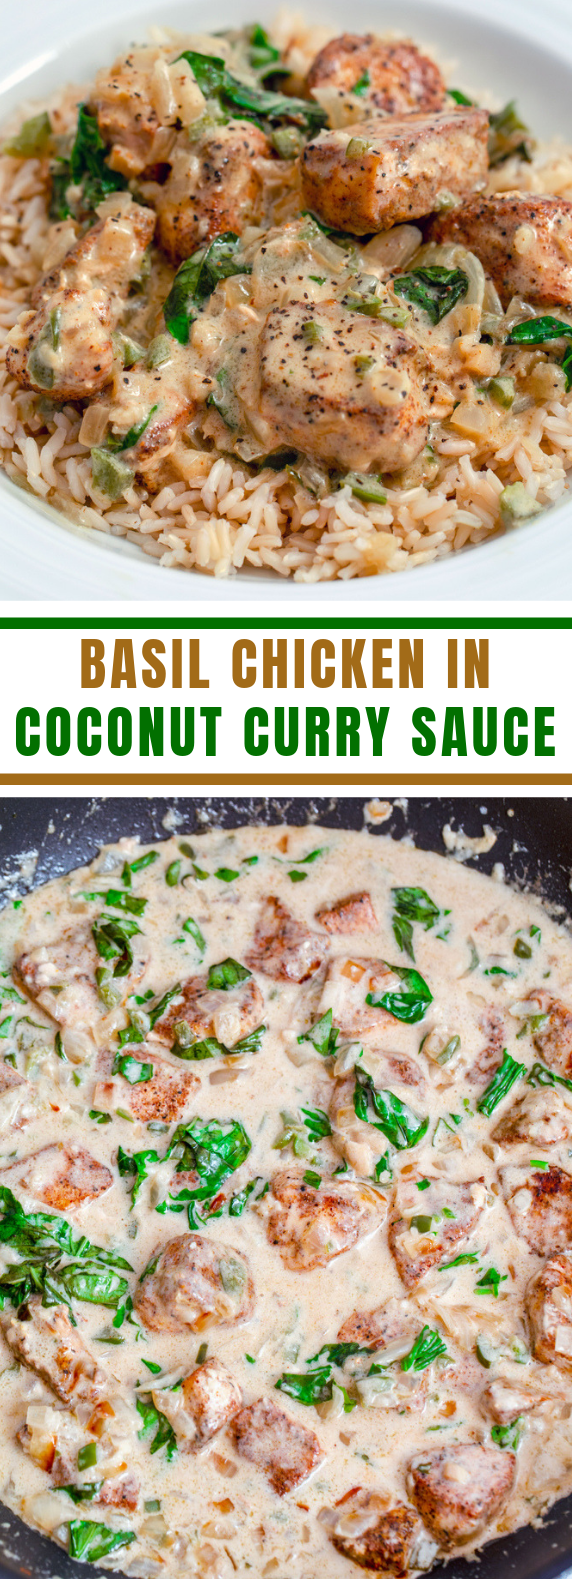 Basil Chicken in Coconut Curry Sauce Basil Chicken in Coconut Curry Sauce